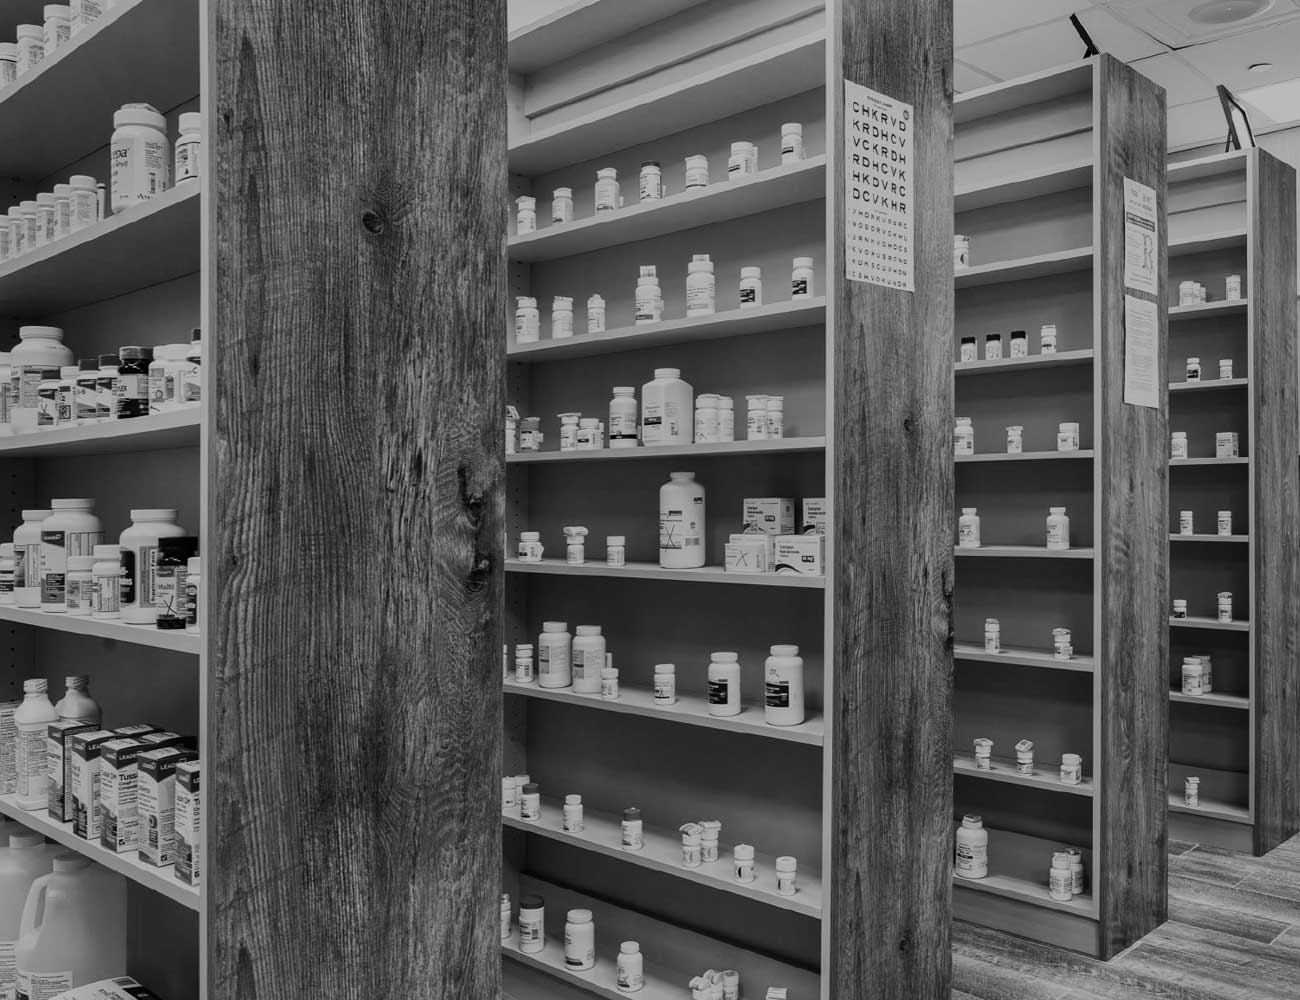 Rows of medicine on shelves